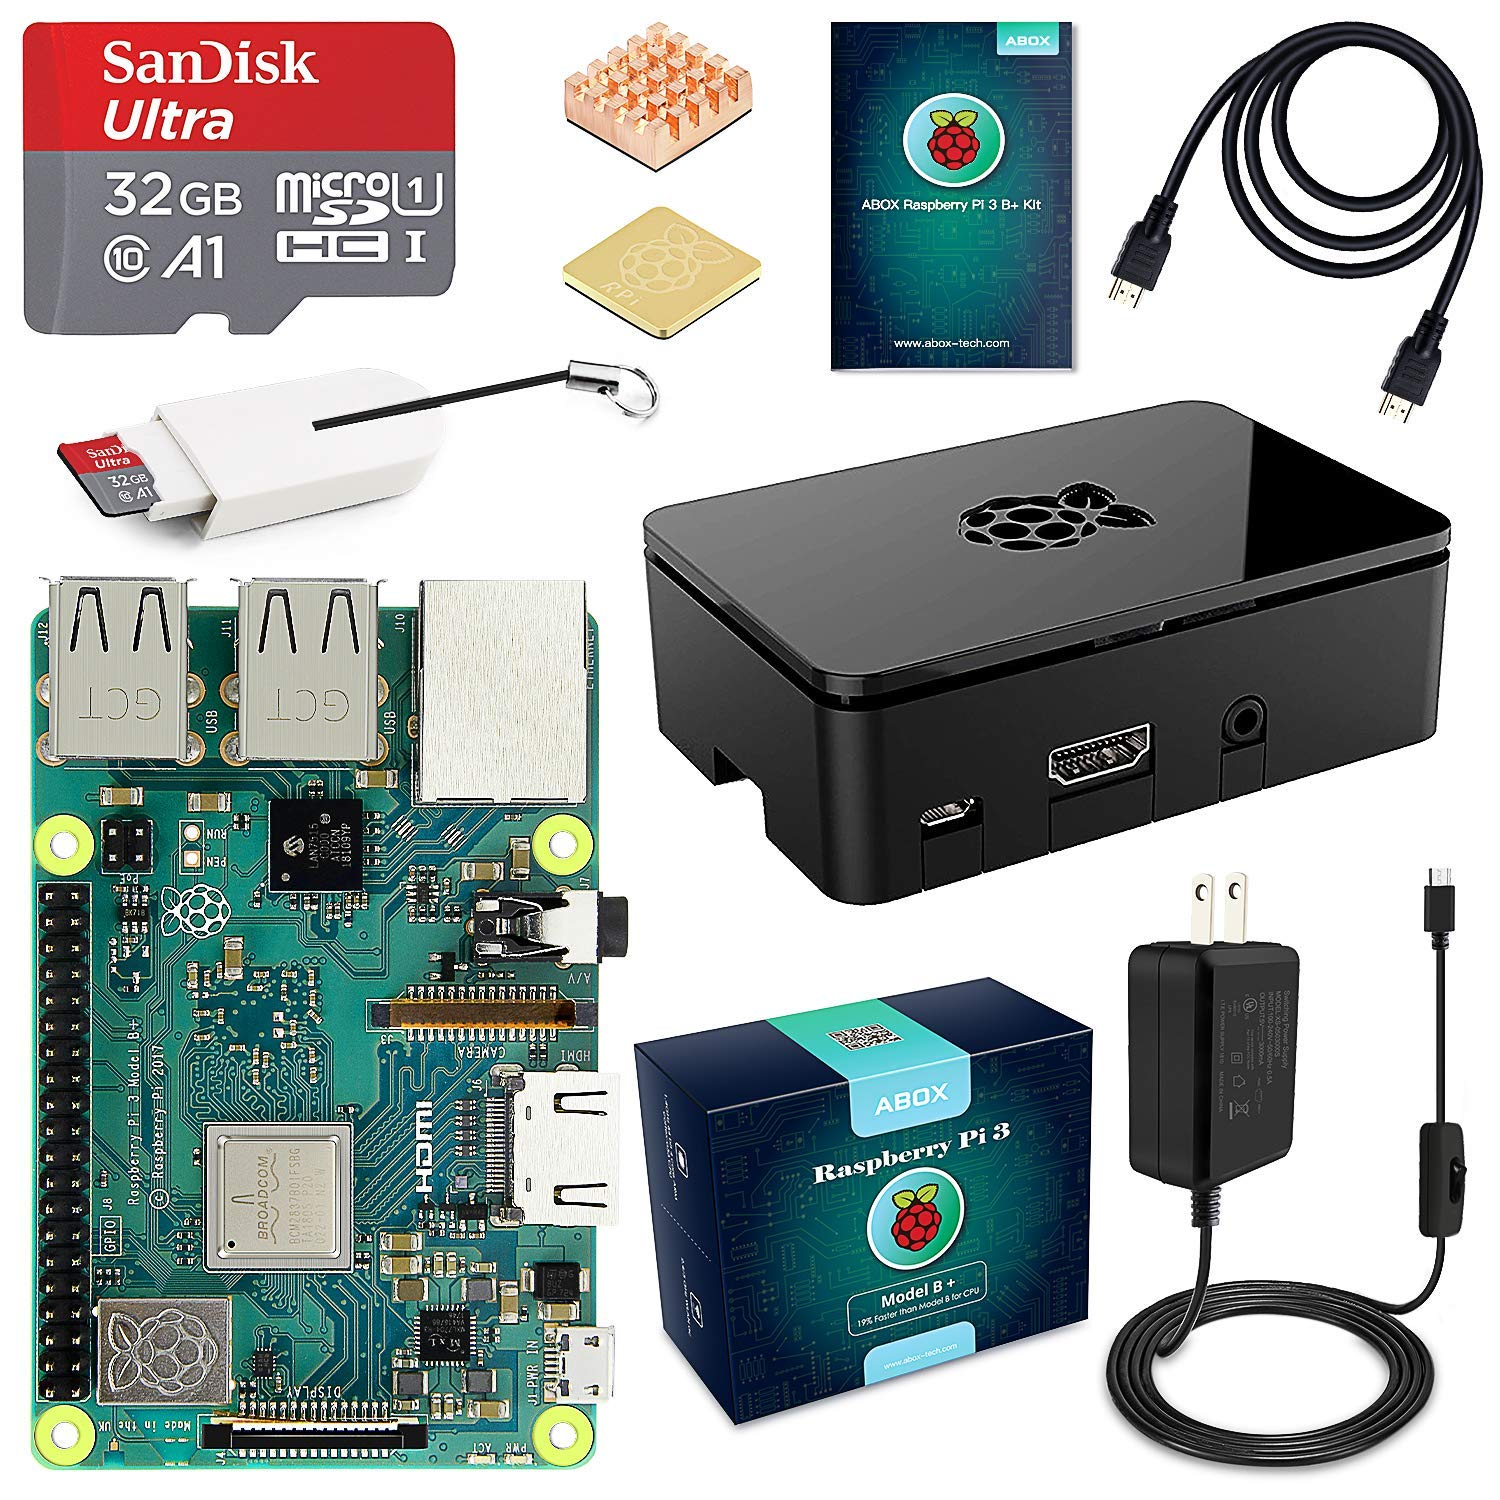 ABOX Raspberry Pi 3 B+ Complete Starter Kit with Model B Plus Motherboard 32GB Micro SD Card NOOBS, 5V 3A On/Off Power Supply, Premium Black Case, HDMI Cable, SD Card Reader with USB A&USB C, Heatsink by ABOX